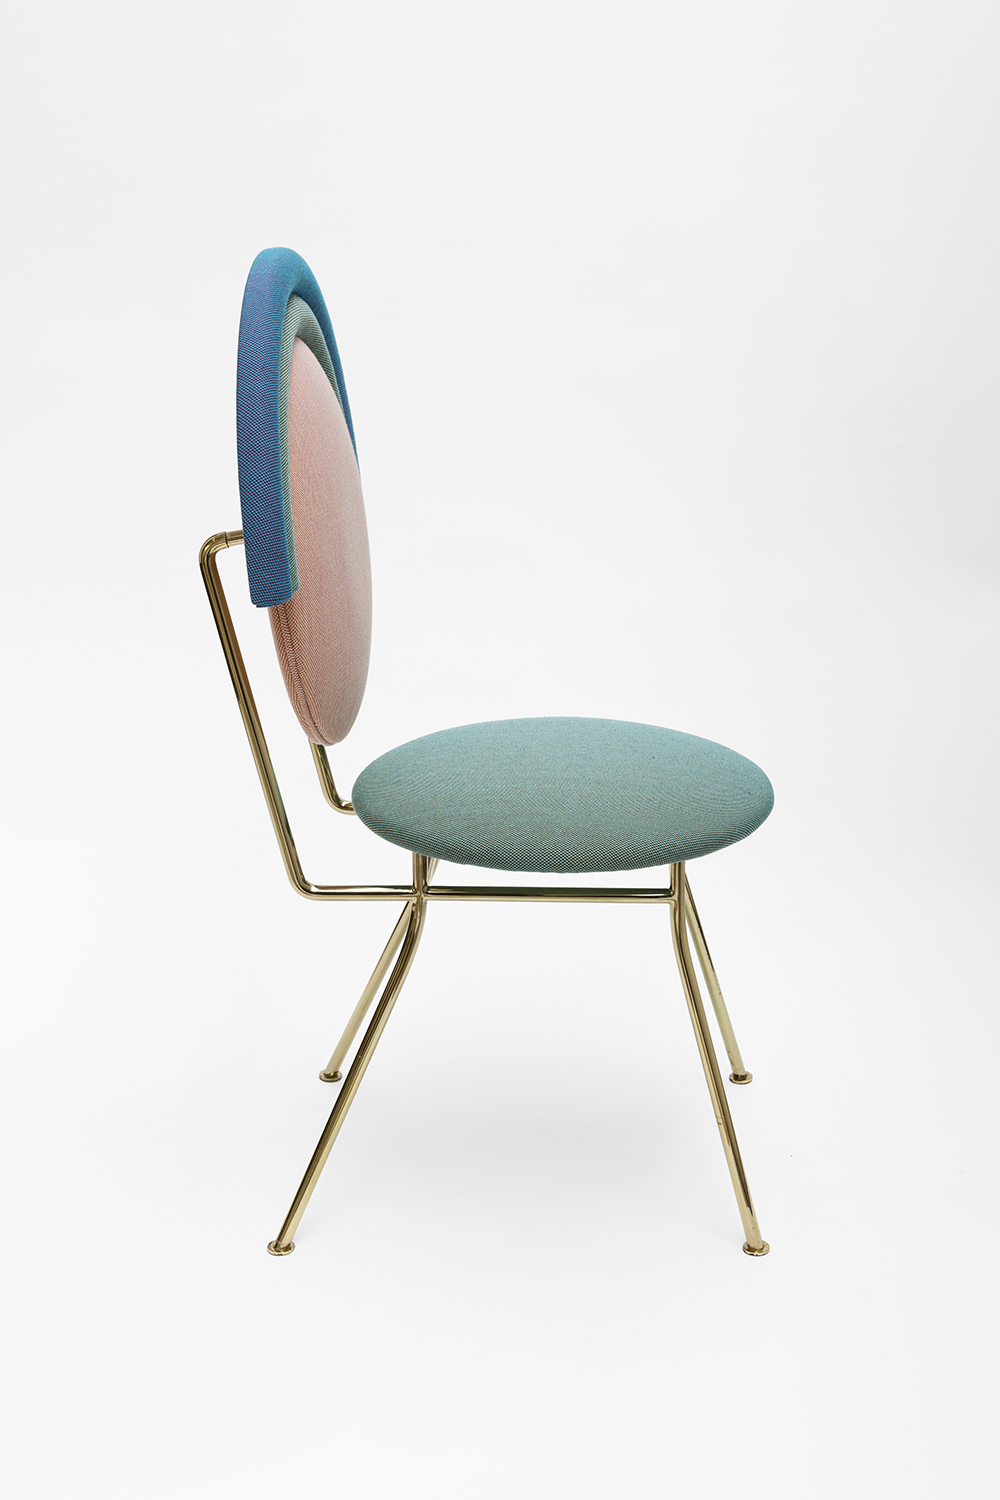 merve kahraman products interiors iris chair side.jpg